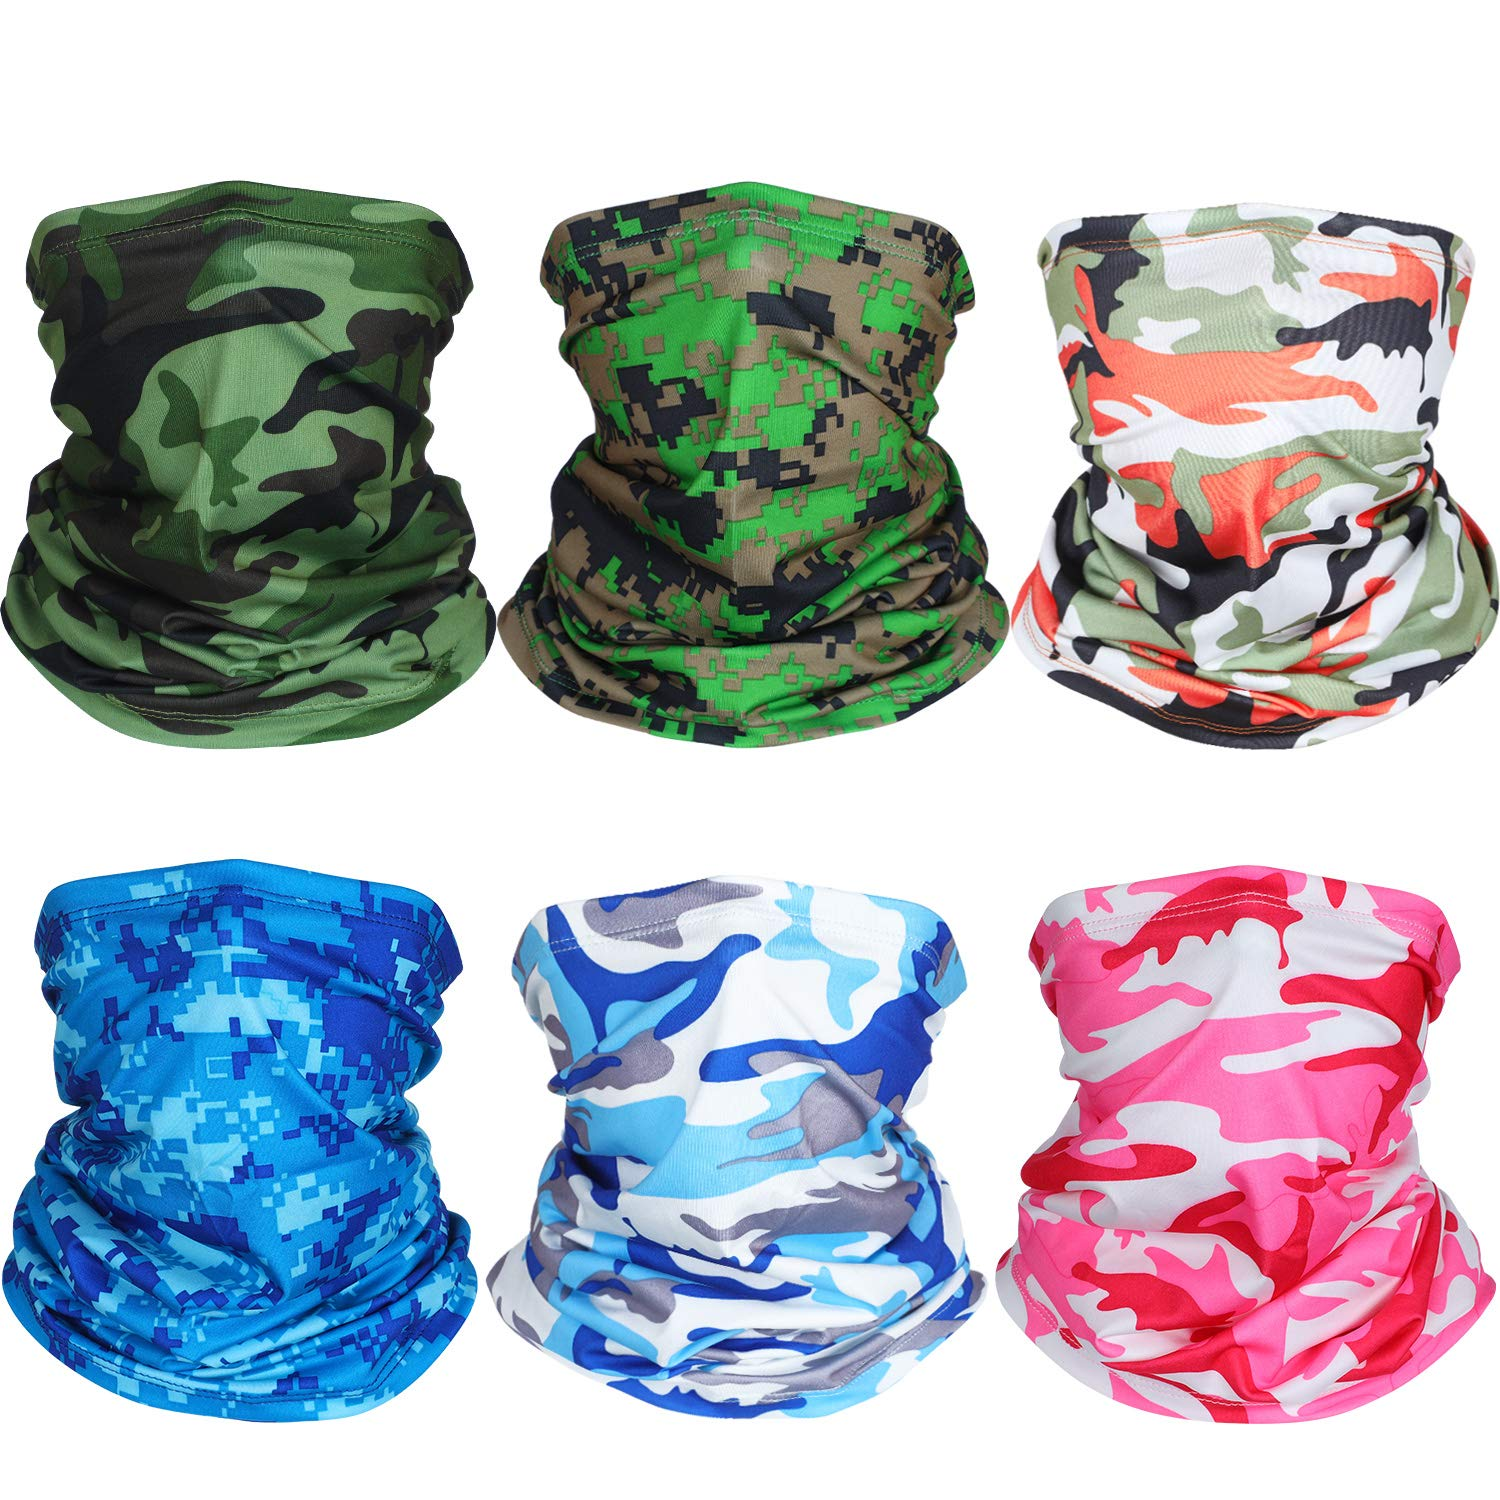 6 Pieces Summer UV Protection Face Mask Neck Gaiter Scarf Sunscreen Breathable Bandana (Color Set 4)